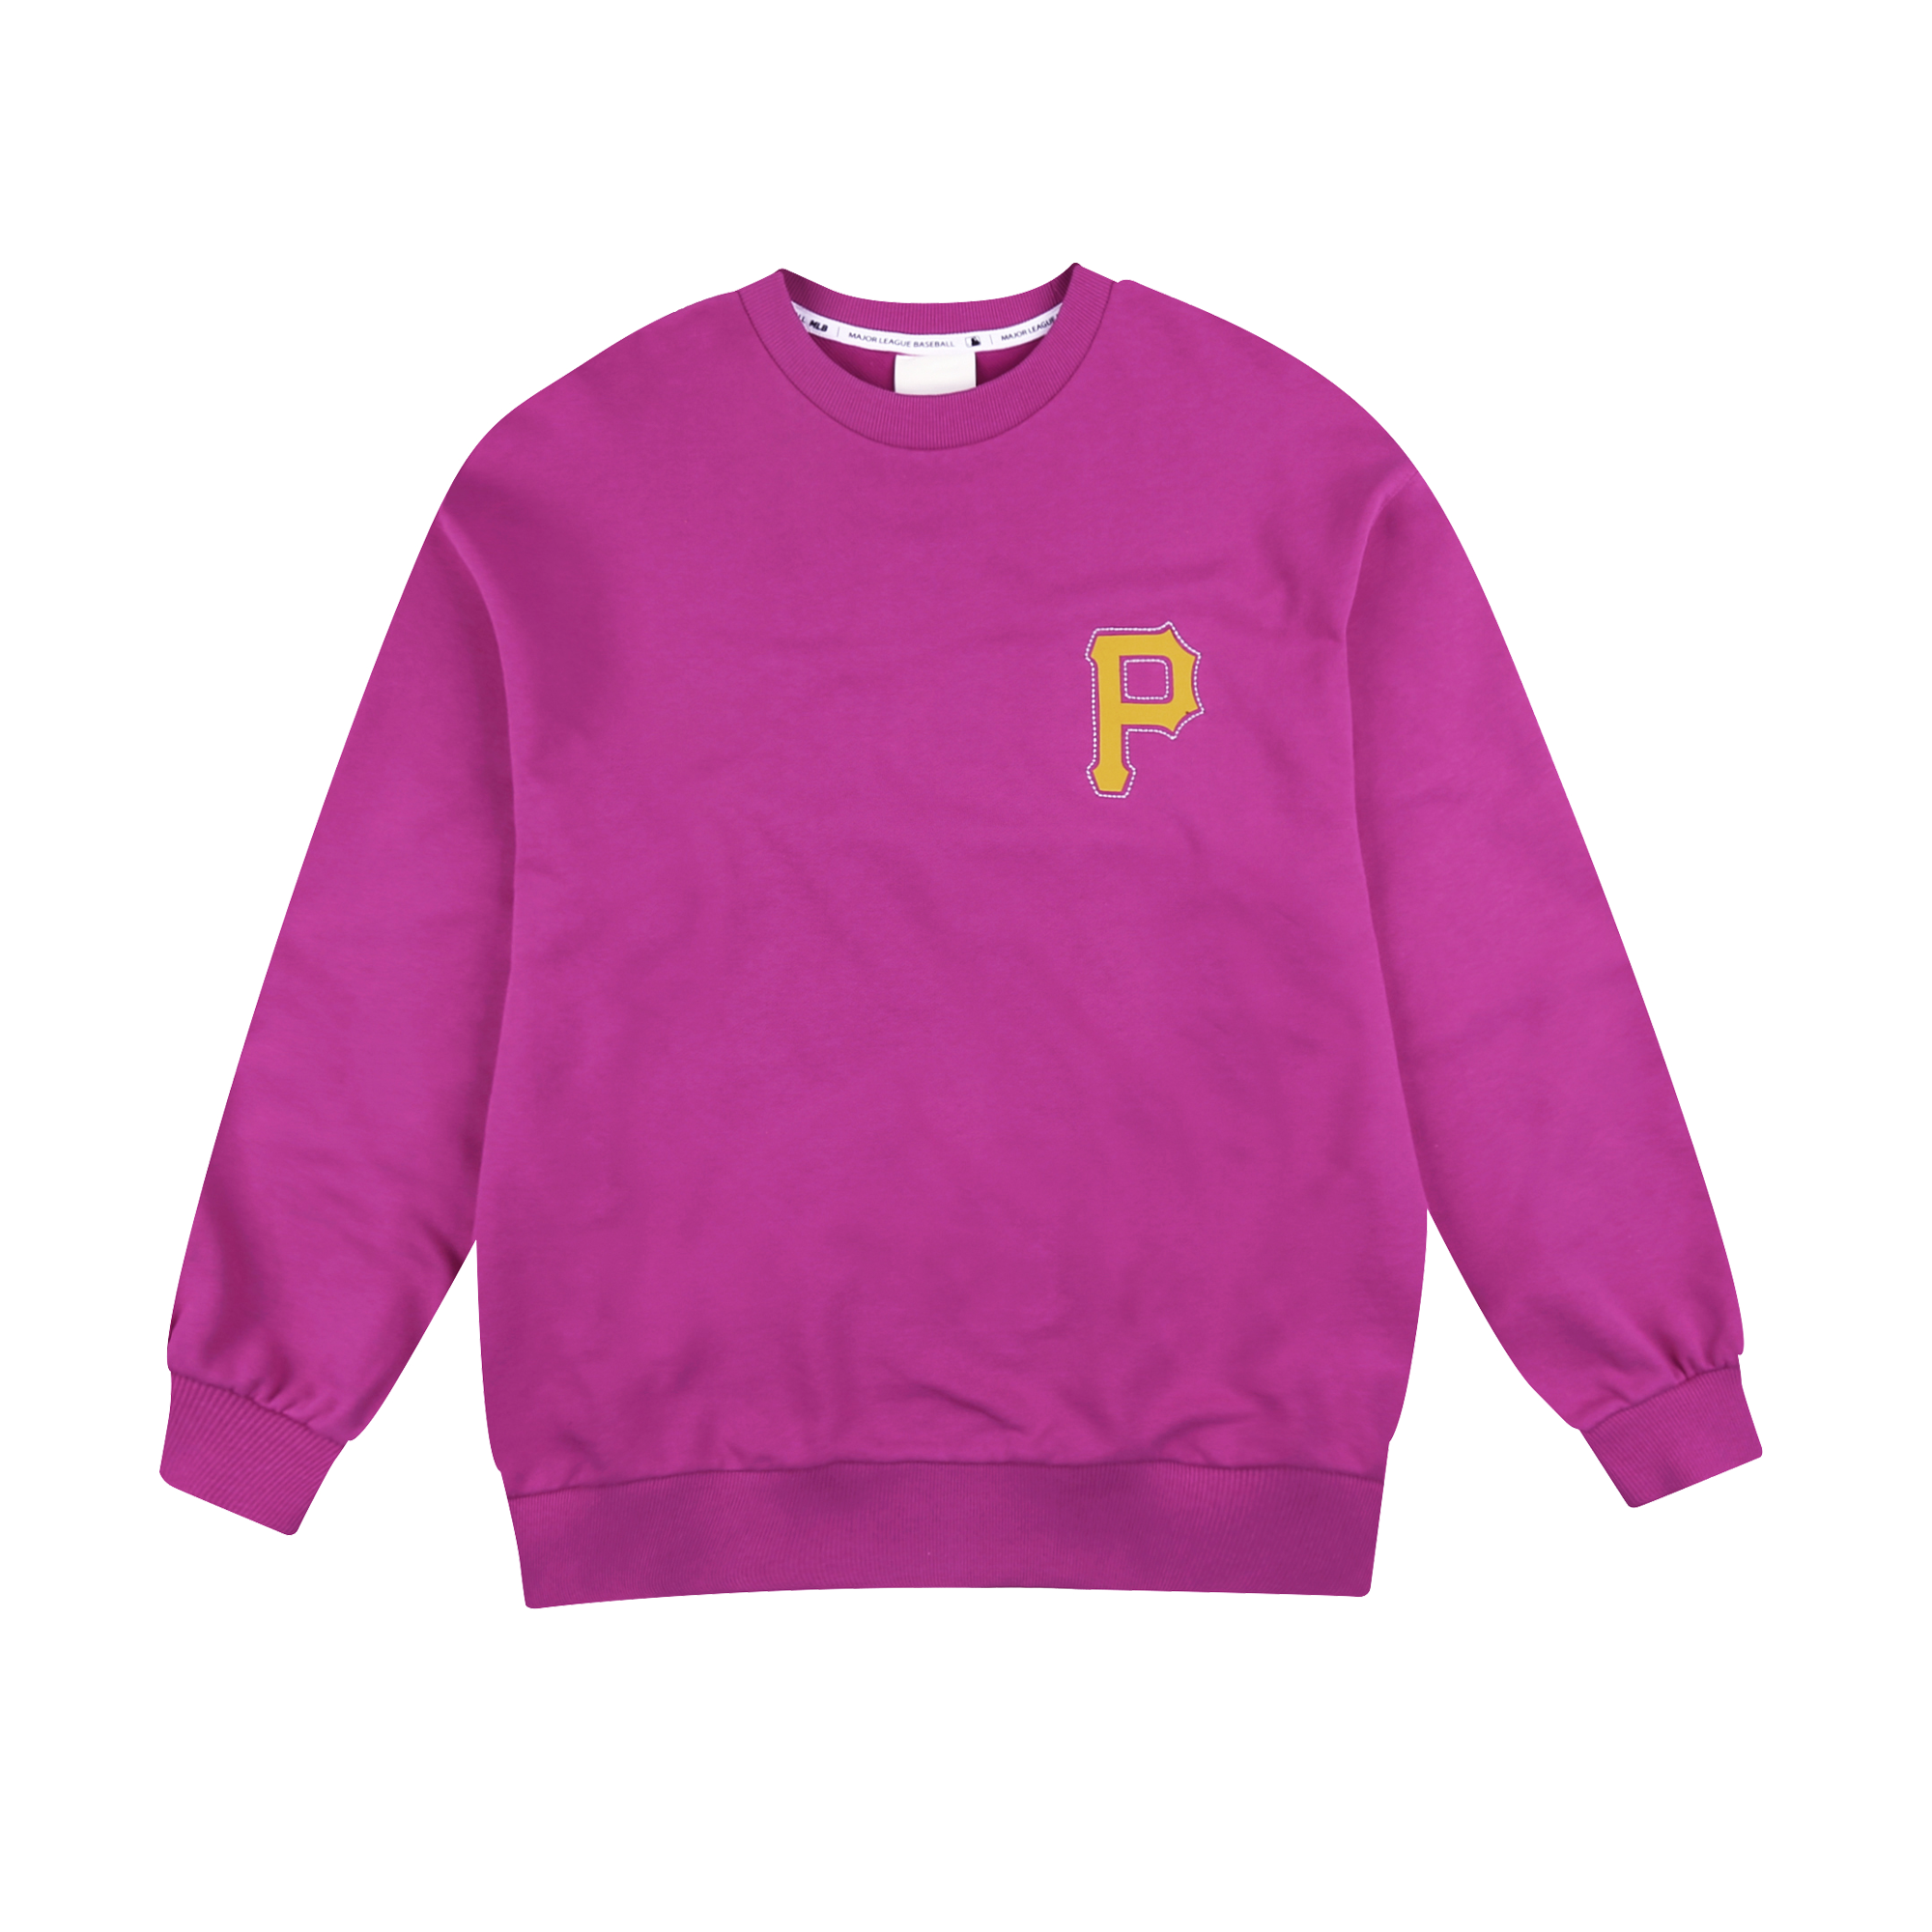 PITTSBURGH PIRATES BIG LOGO SIGNATURE SWEATSHIRT